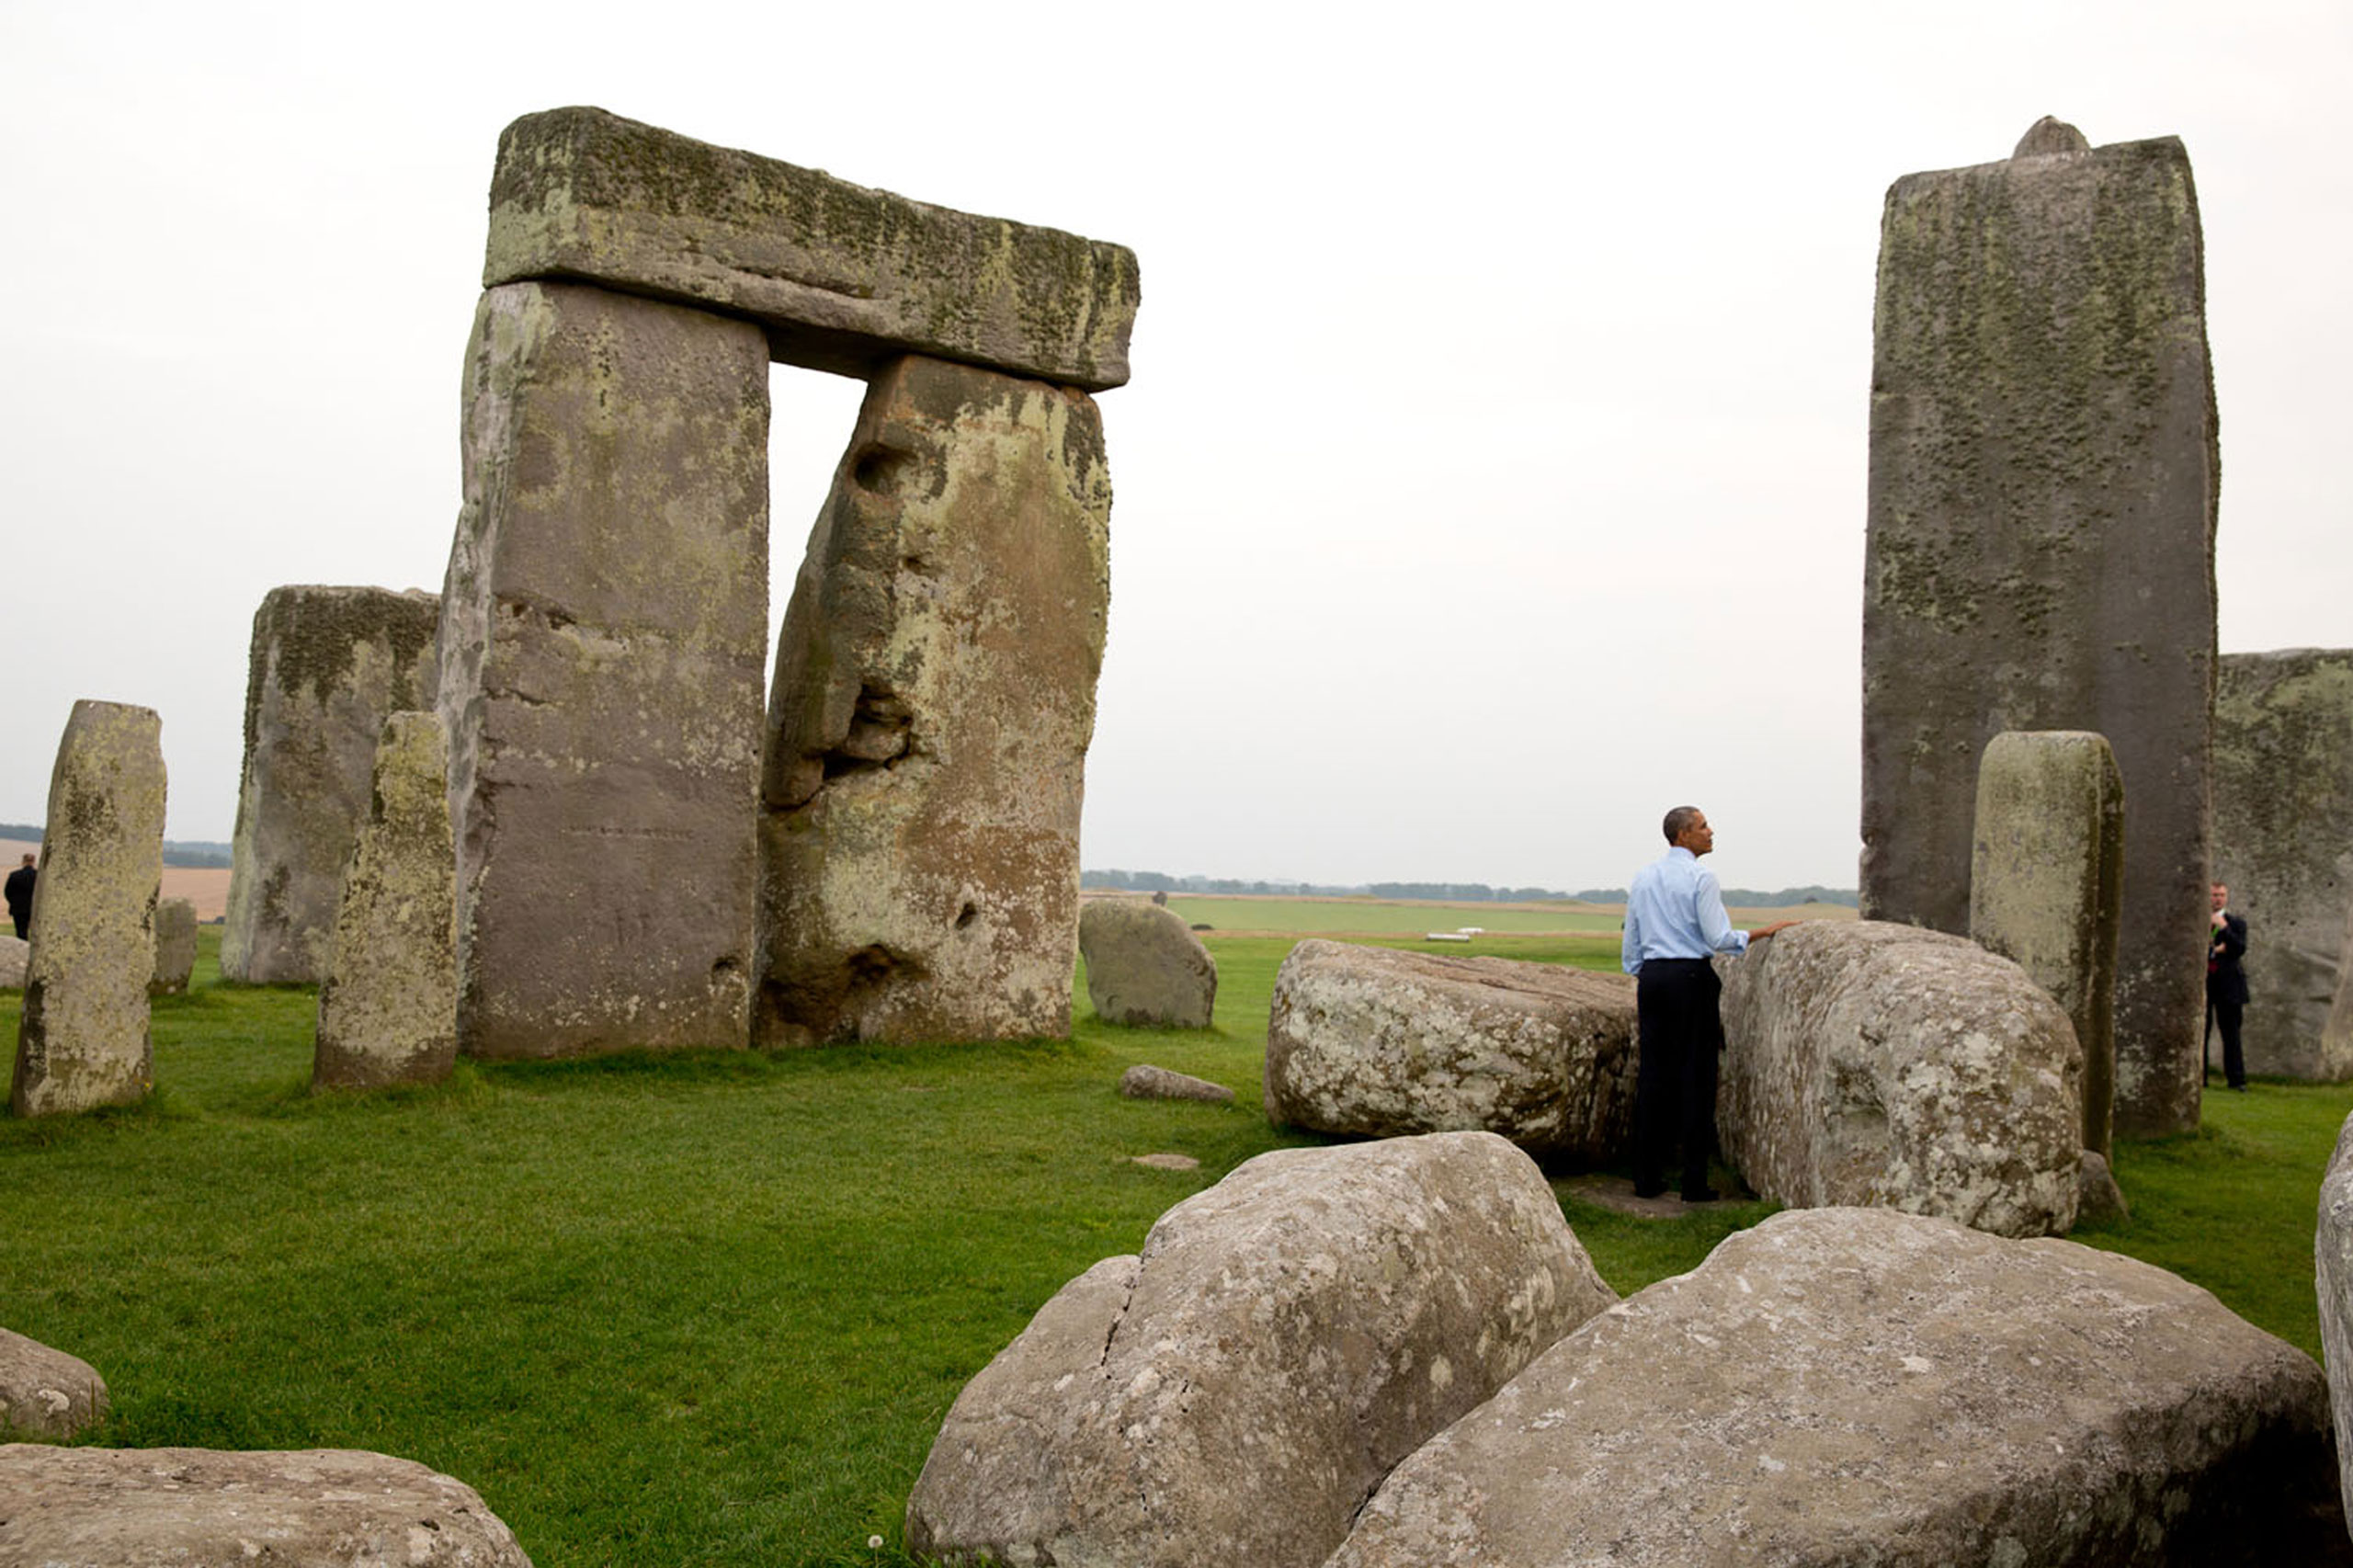 We were at the NATO Summit in Wales when someone mentioned to the President that Stonehenge wasn't that far away. 'Let's go,' he said. So when the Summit ended, we took a slight detour on the way back to Air Force One,  September 5, 2014.